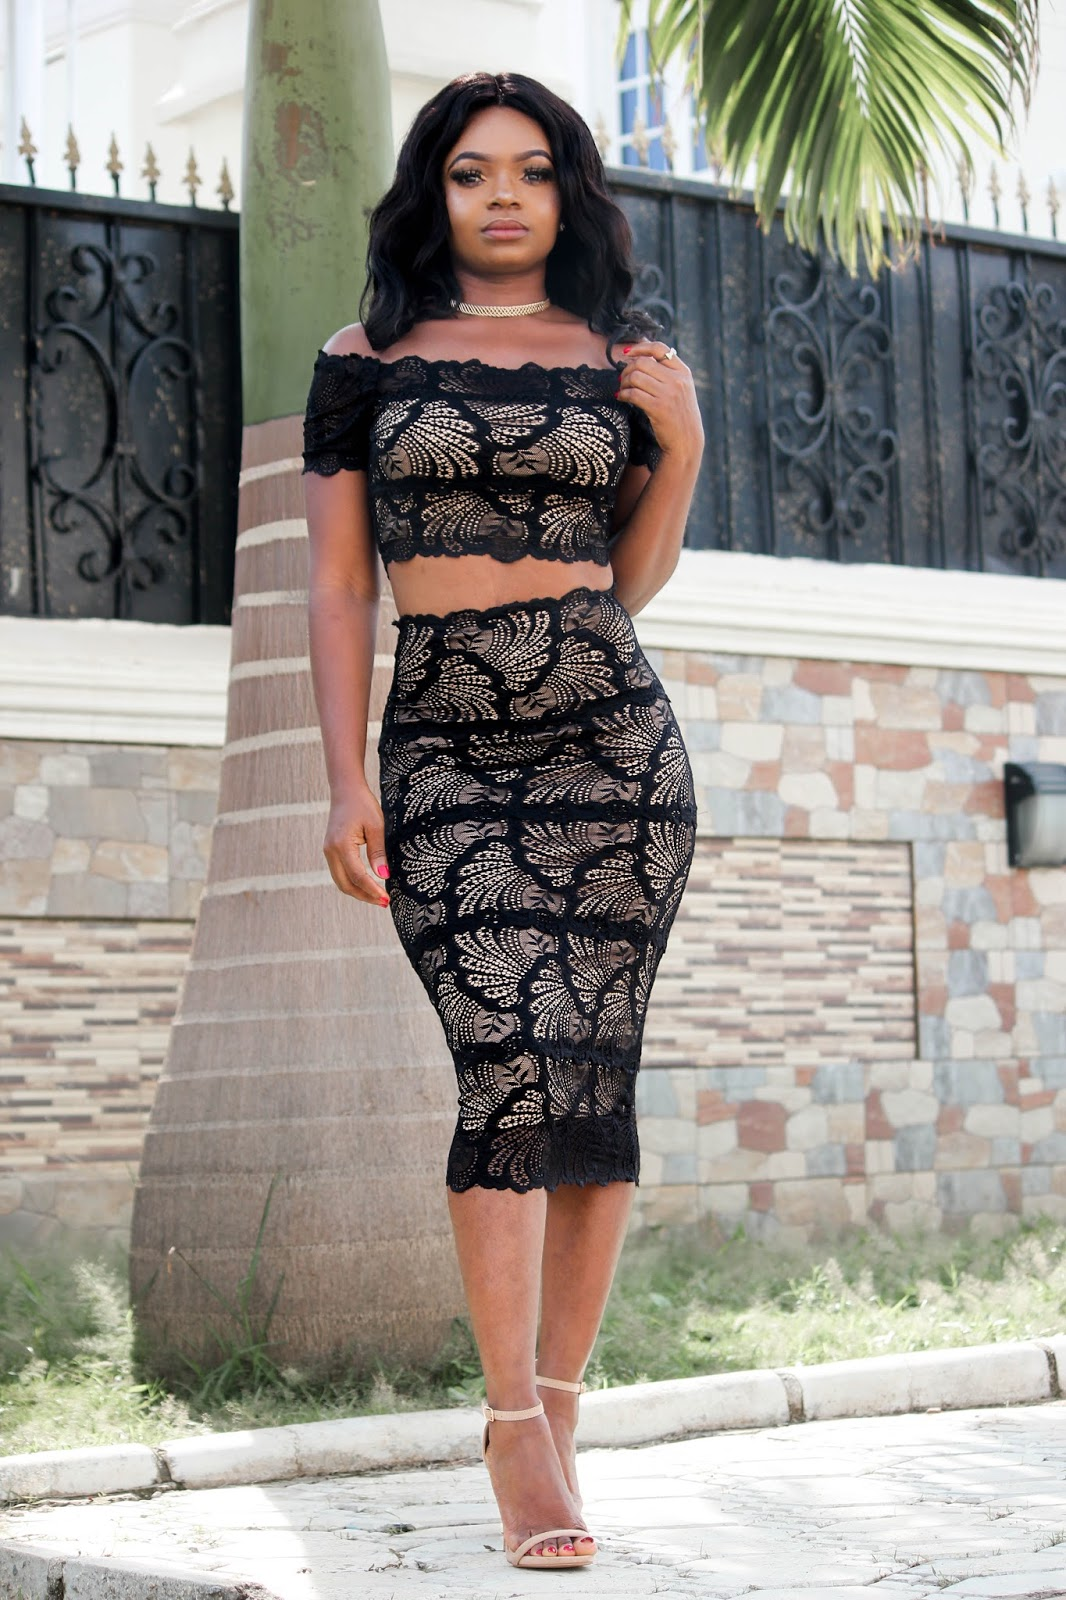 NUDE ILLUSION - Black Lace Nude Illusion Off Shoulder Two Piece Set